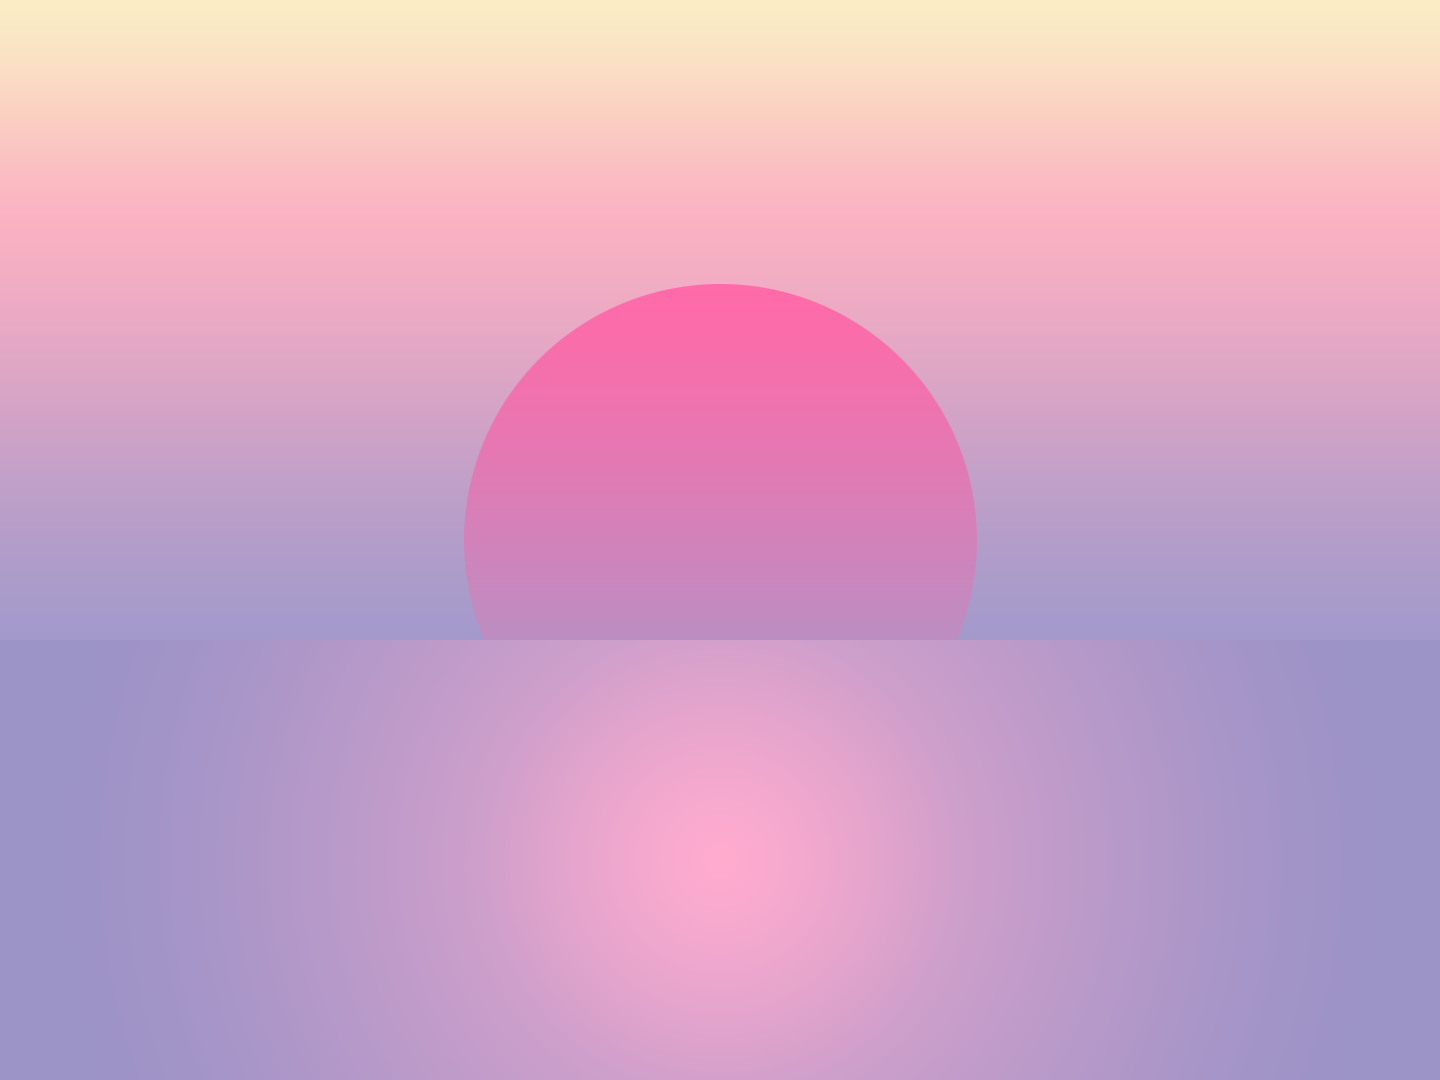 Sunset Over Water violet pink sunny surf dusk dawn summer art wallpaper relax cool vibes calm retro chill vaporwave water sunset sun vector